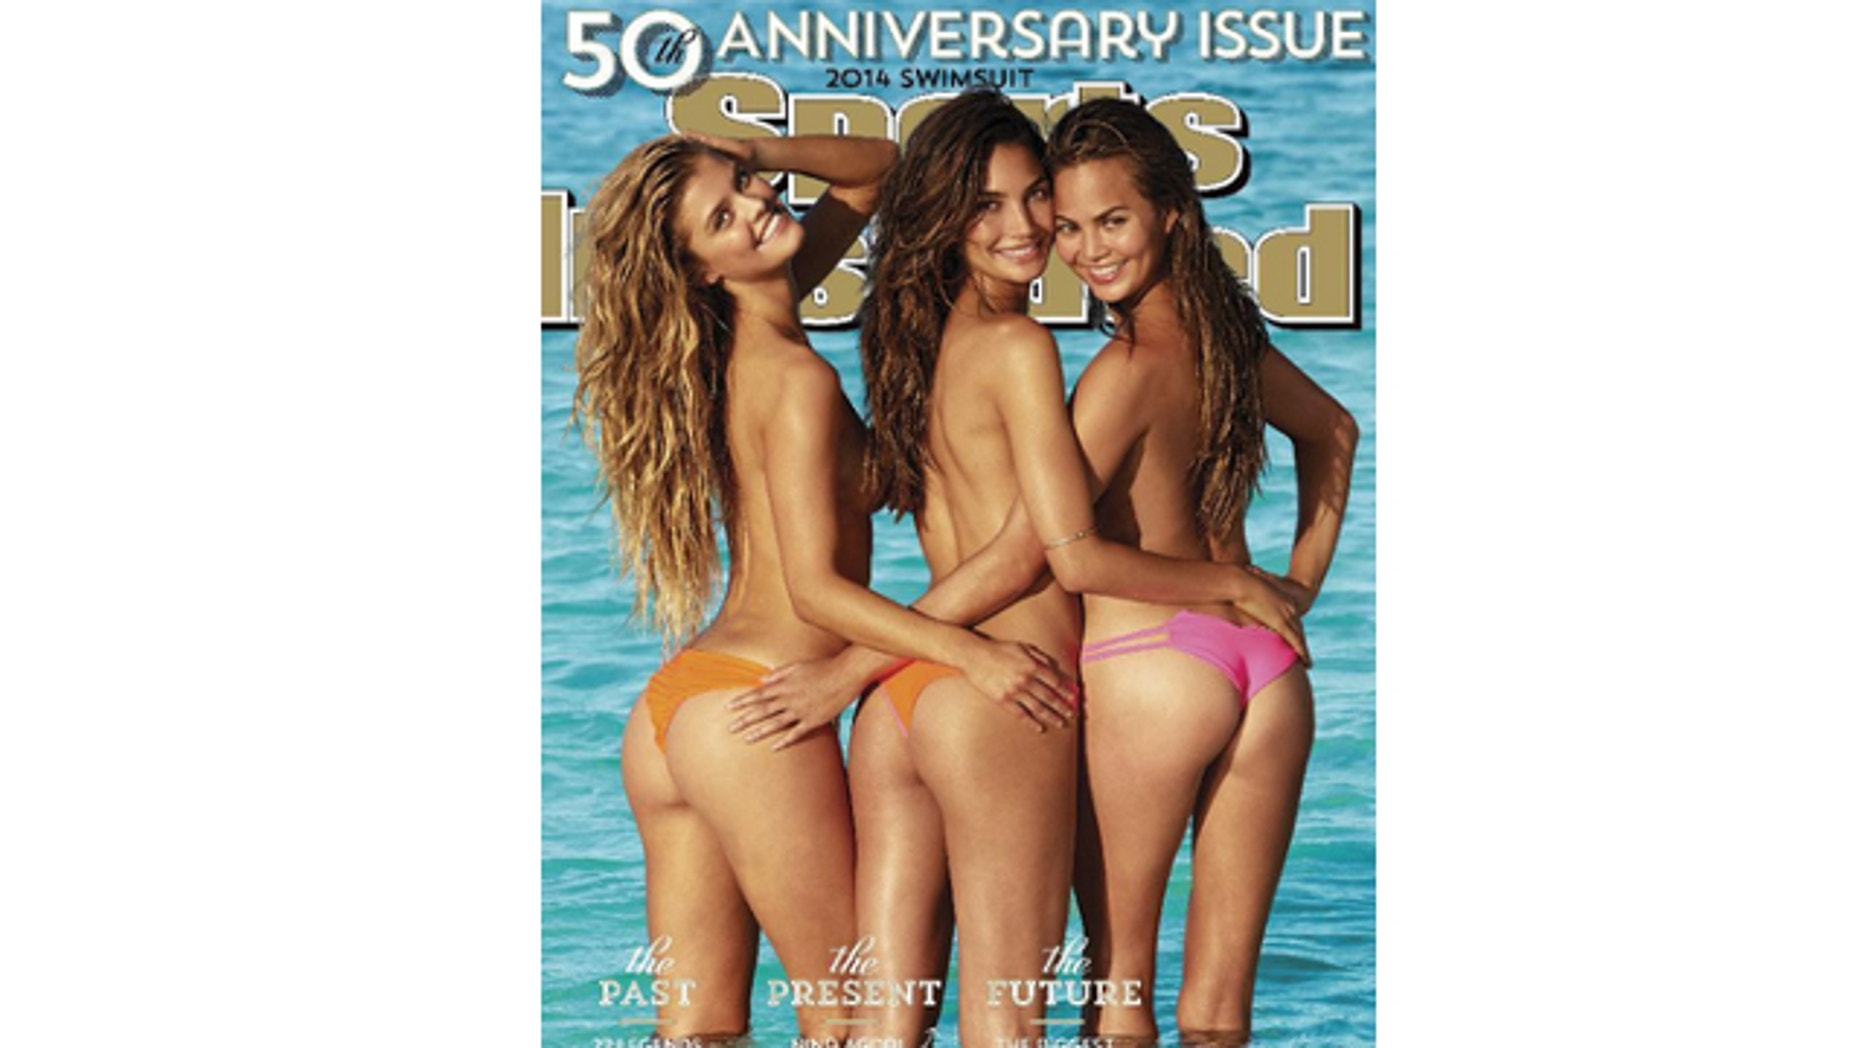 This cover image taken by James Macari for Sports Illustrated shows models, from left, Nina Agdal, Lily Aldridge, and Chrissy Teigen on the cover of the 2014 Swimsuit Issue. The 50th Anniversary issue will go on sale on February 18.